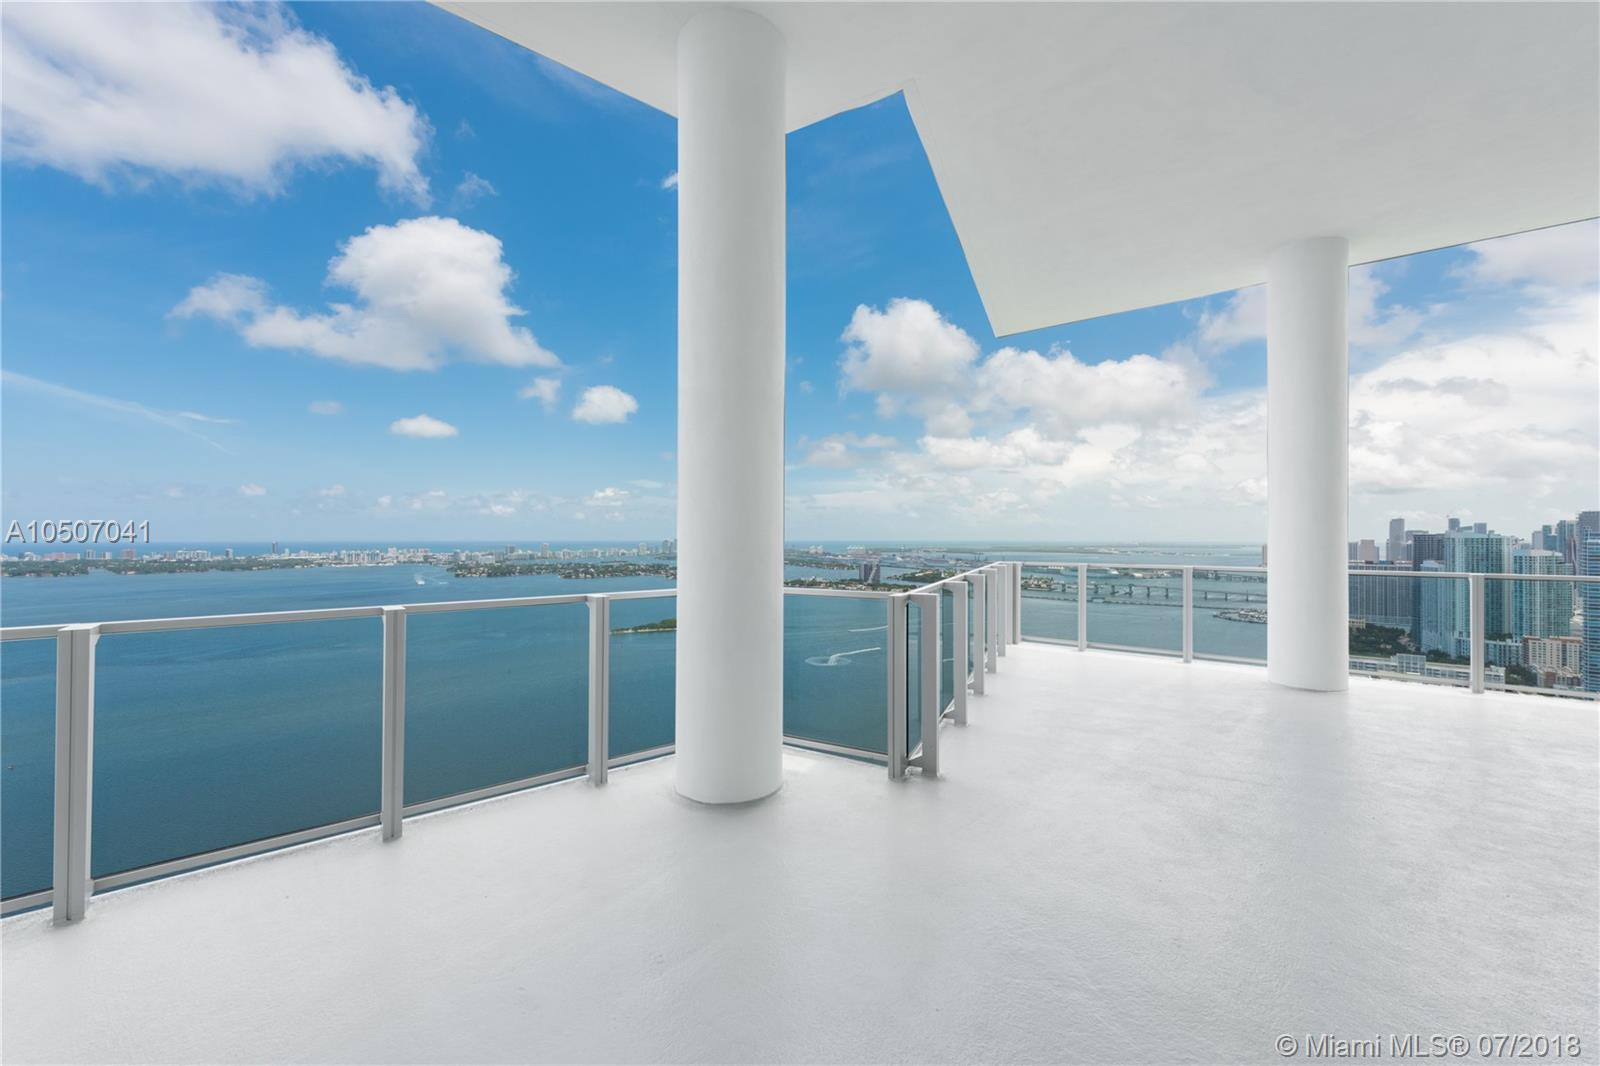 2900 N E 7 Ave #5102 For Sale A10507041, FL